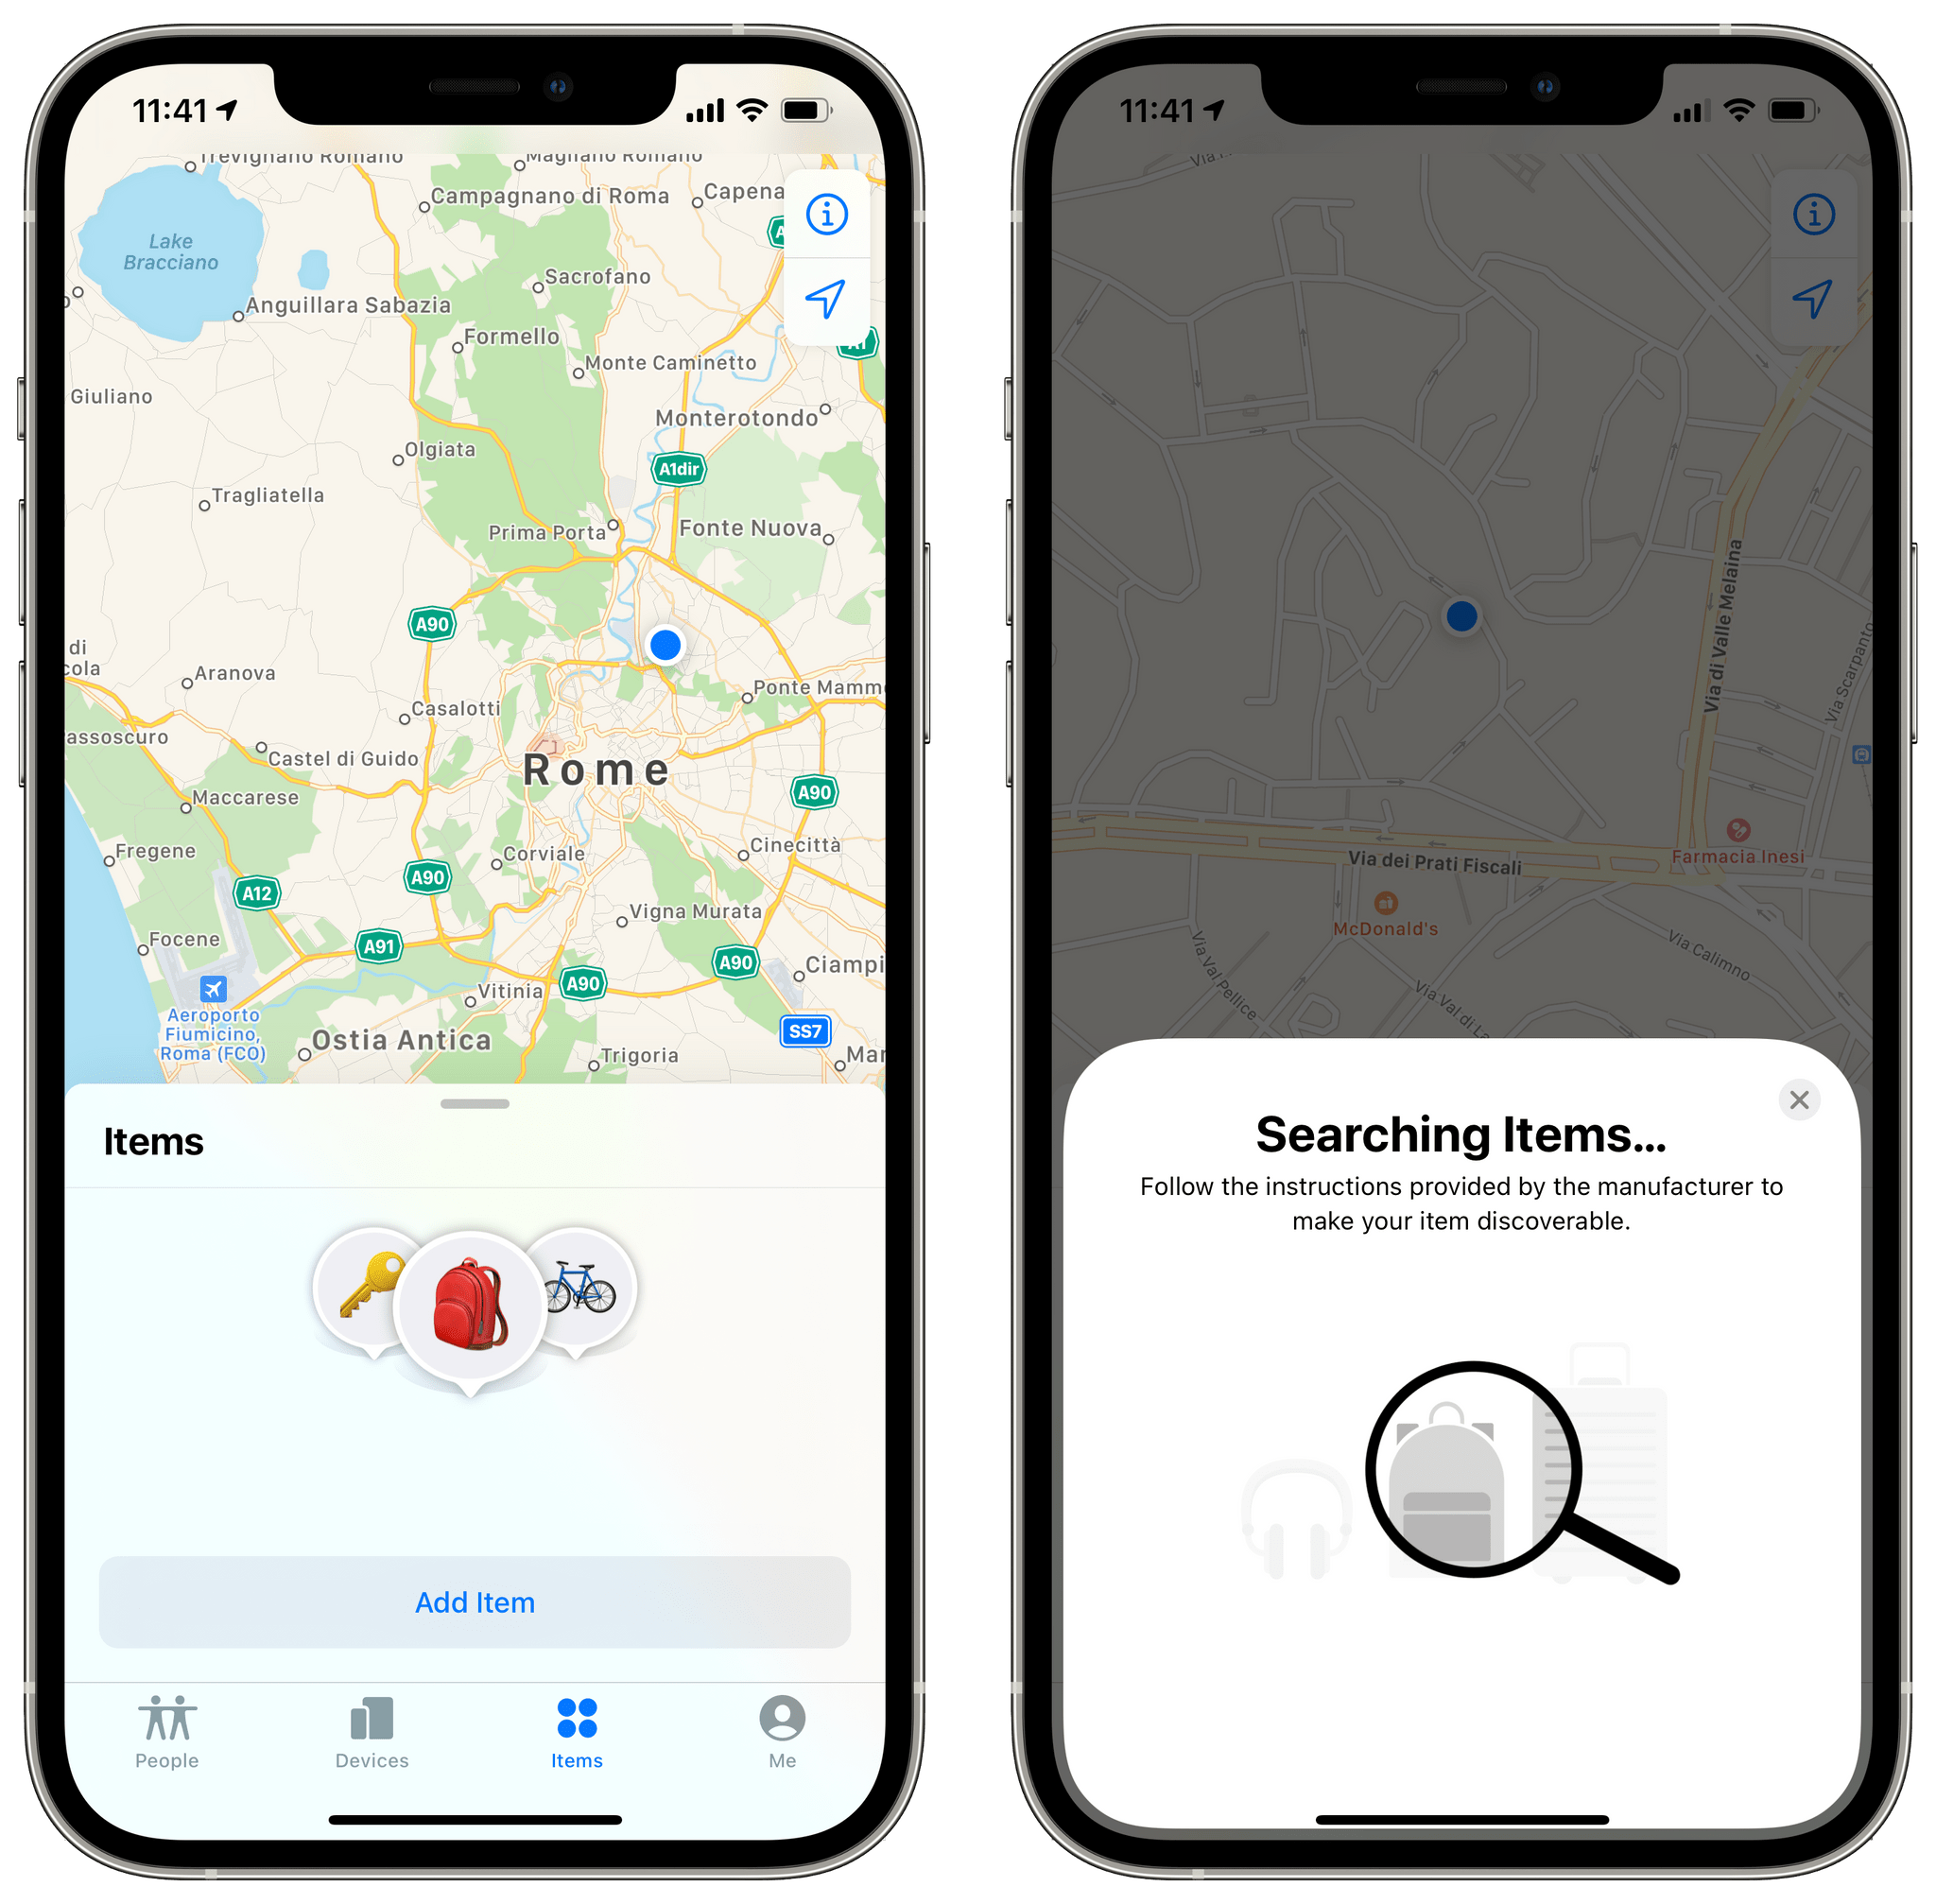 Support for items in the Find My app.